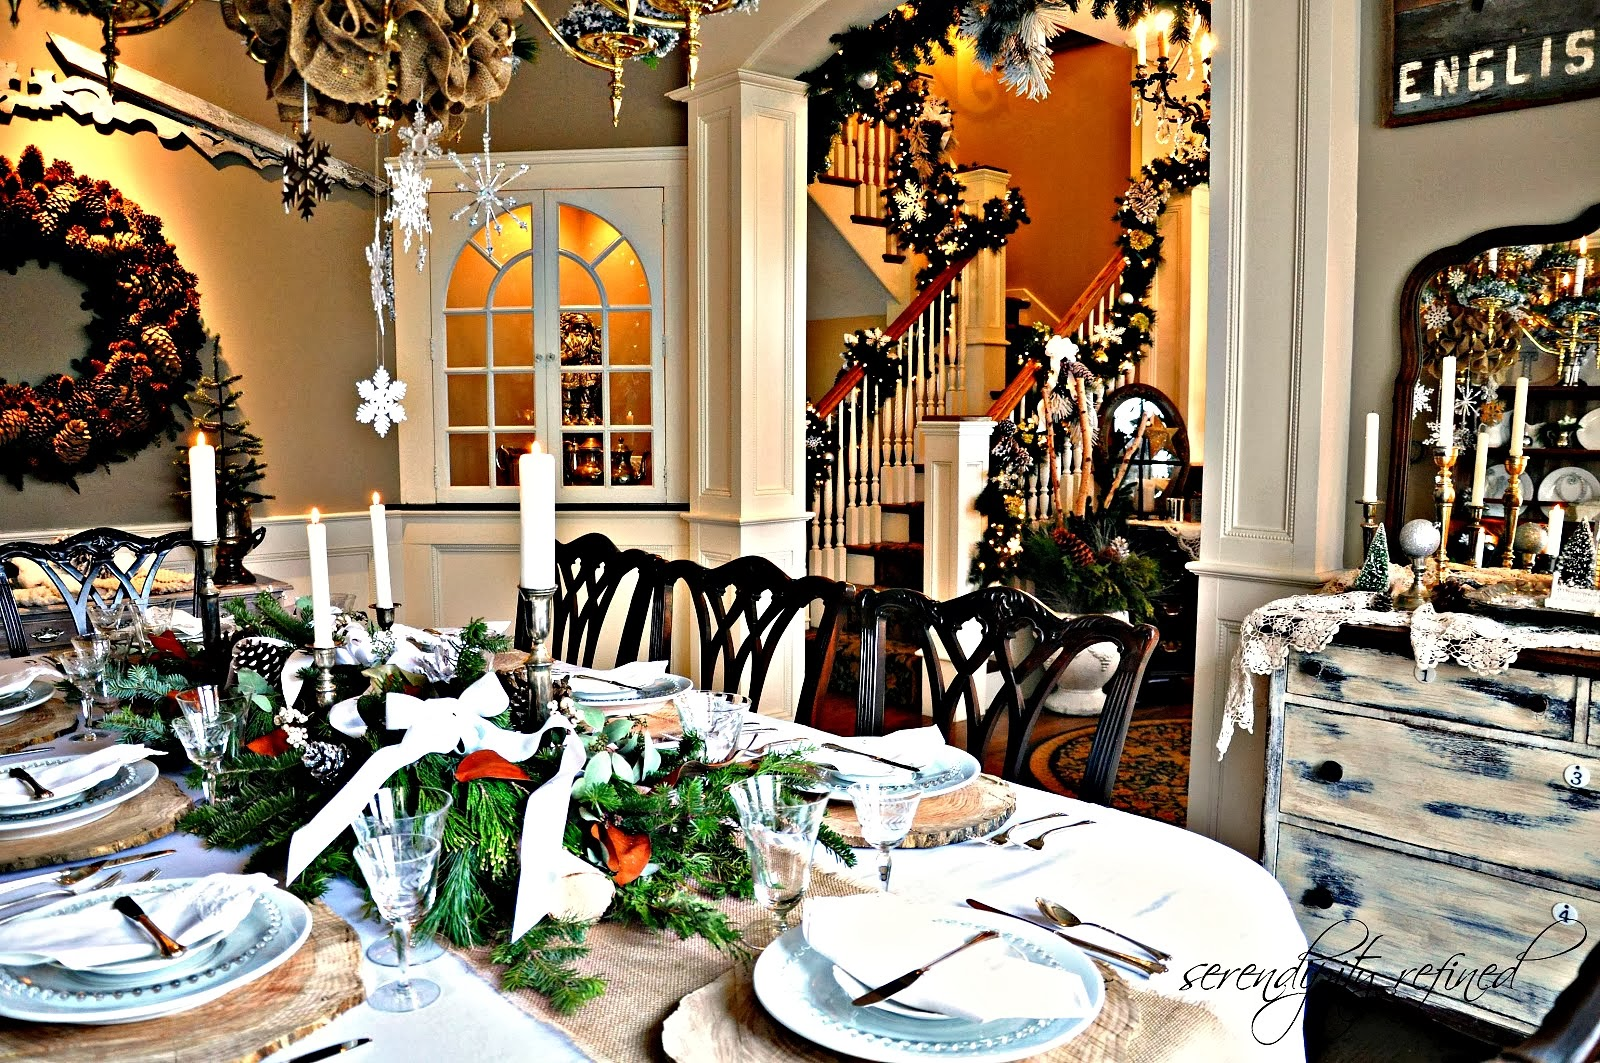 Serendipity Refined Blog: French Country Inspired